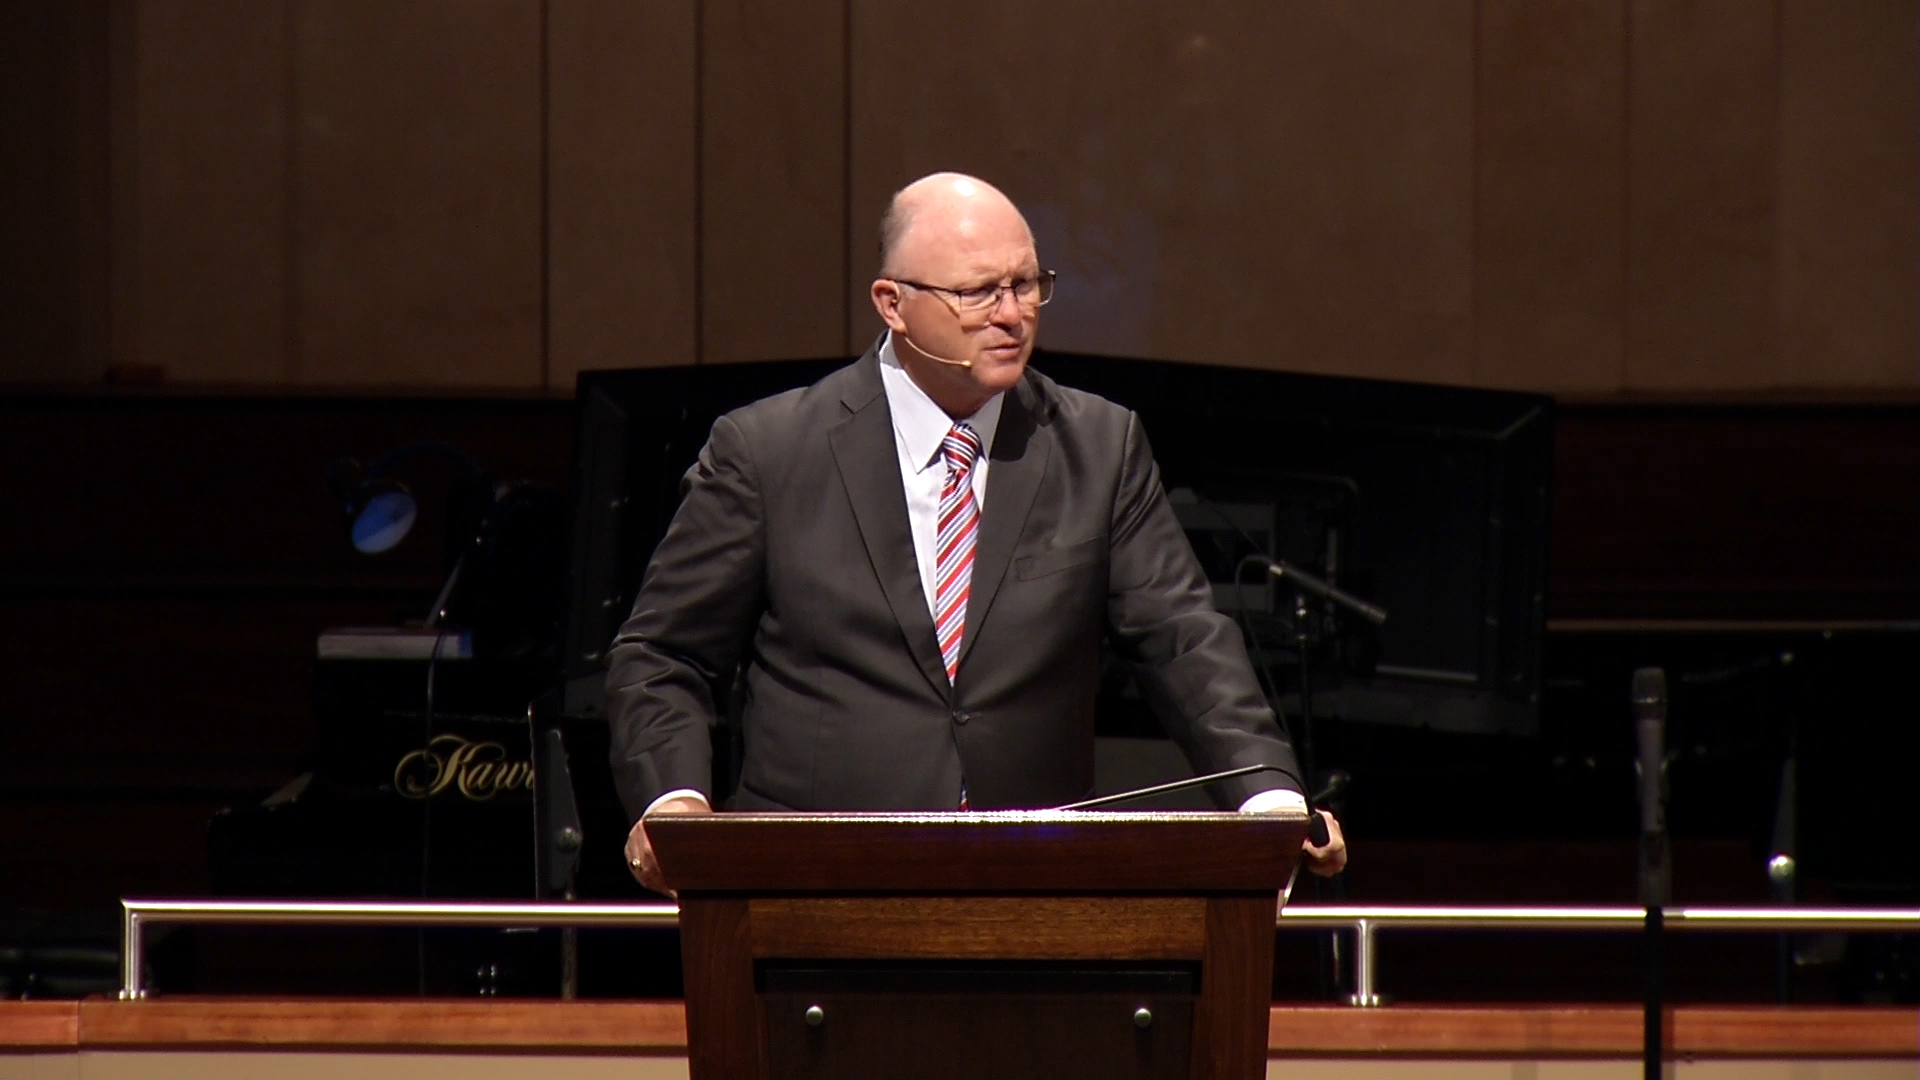 Pastor Paul Chappell: Together in Prayer